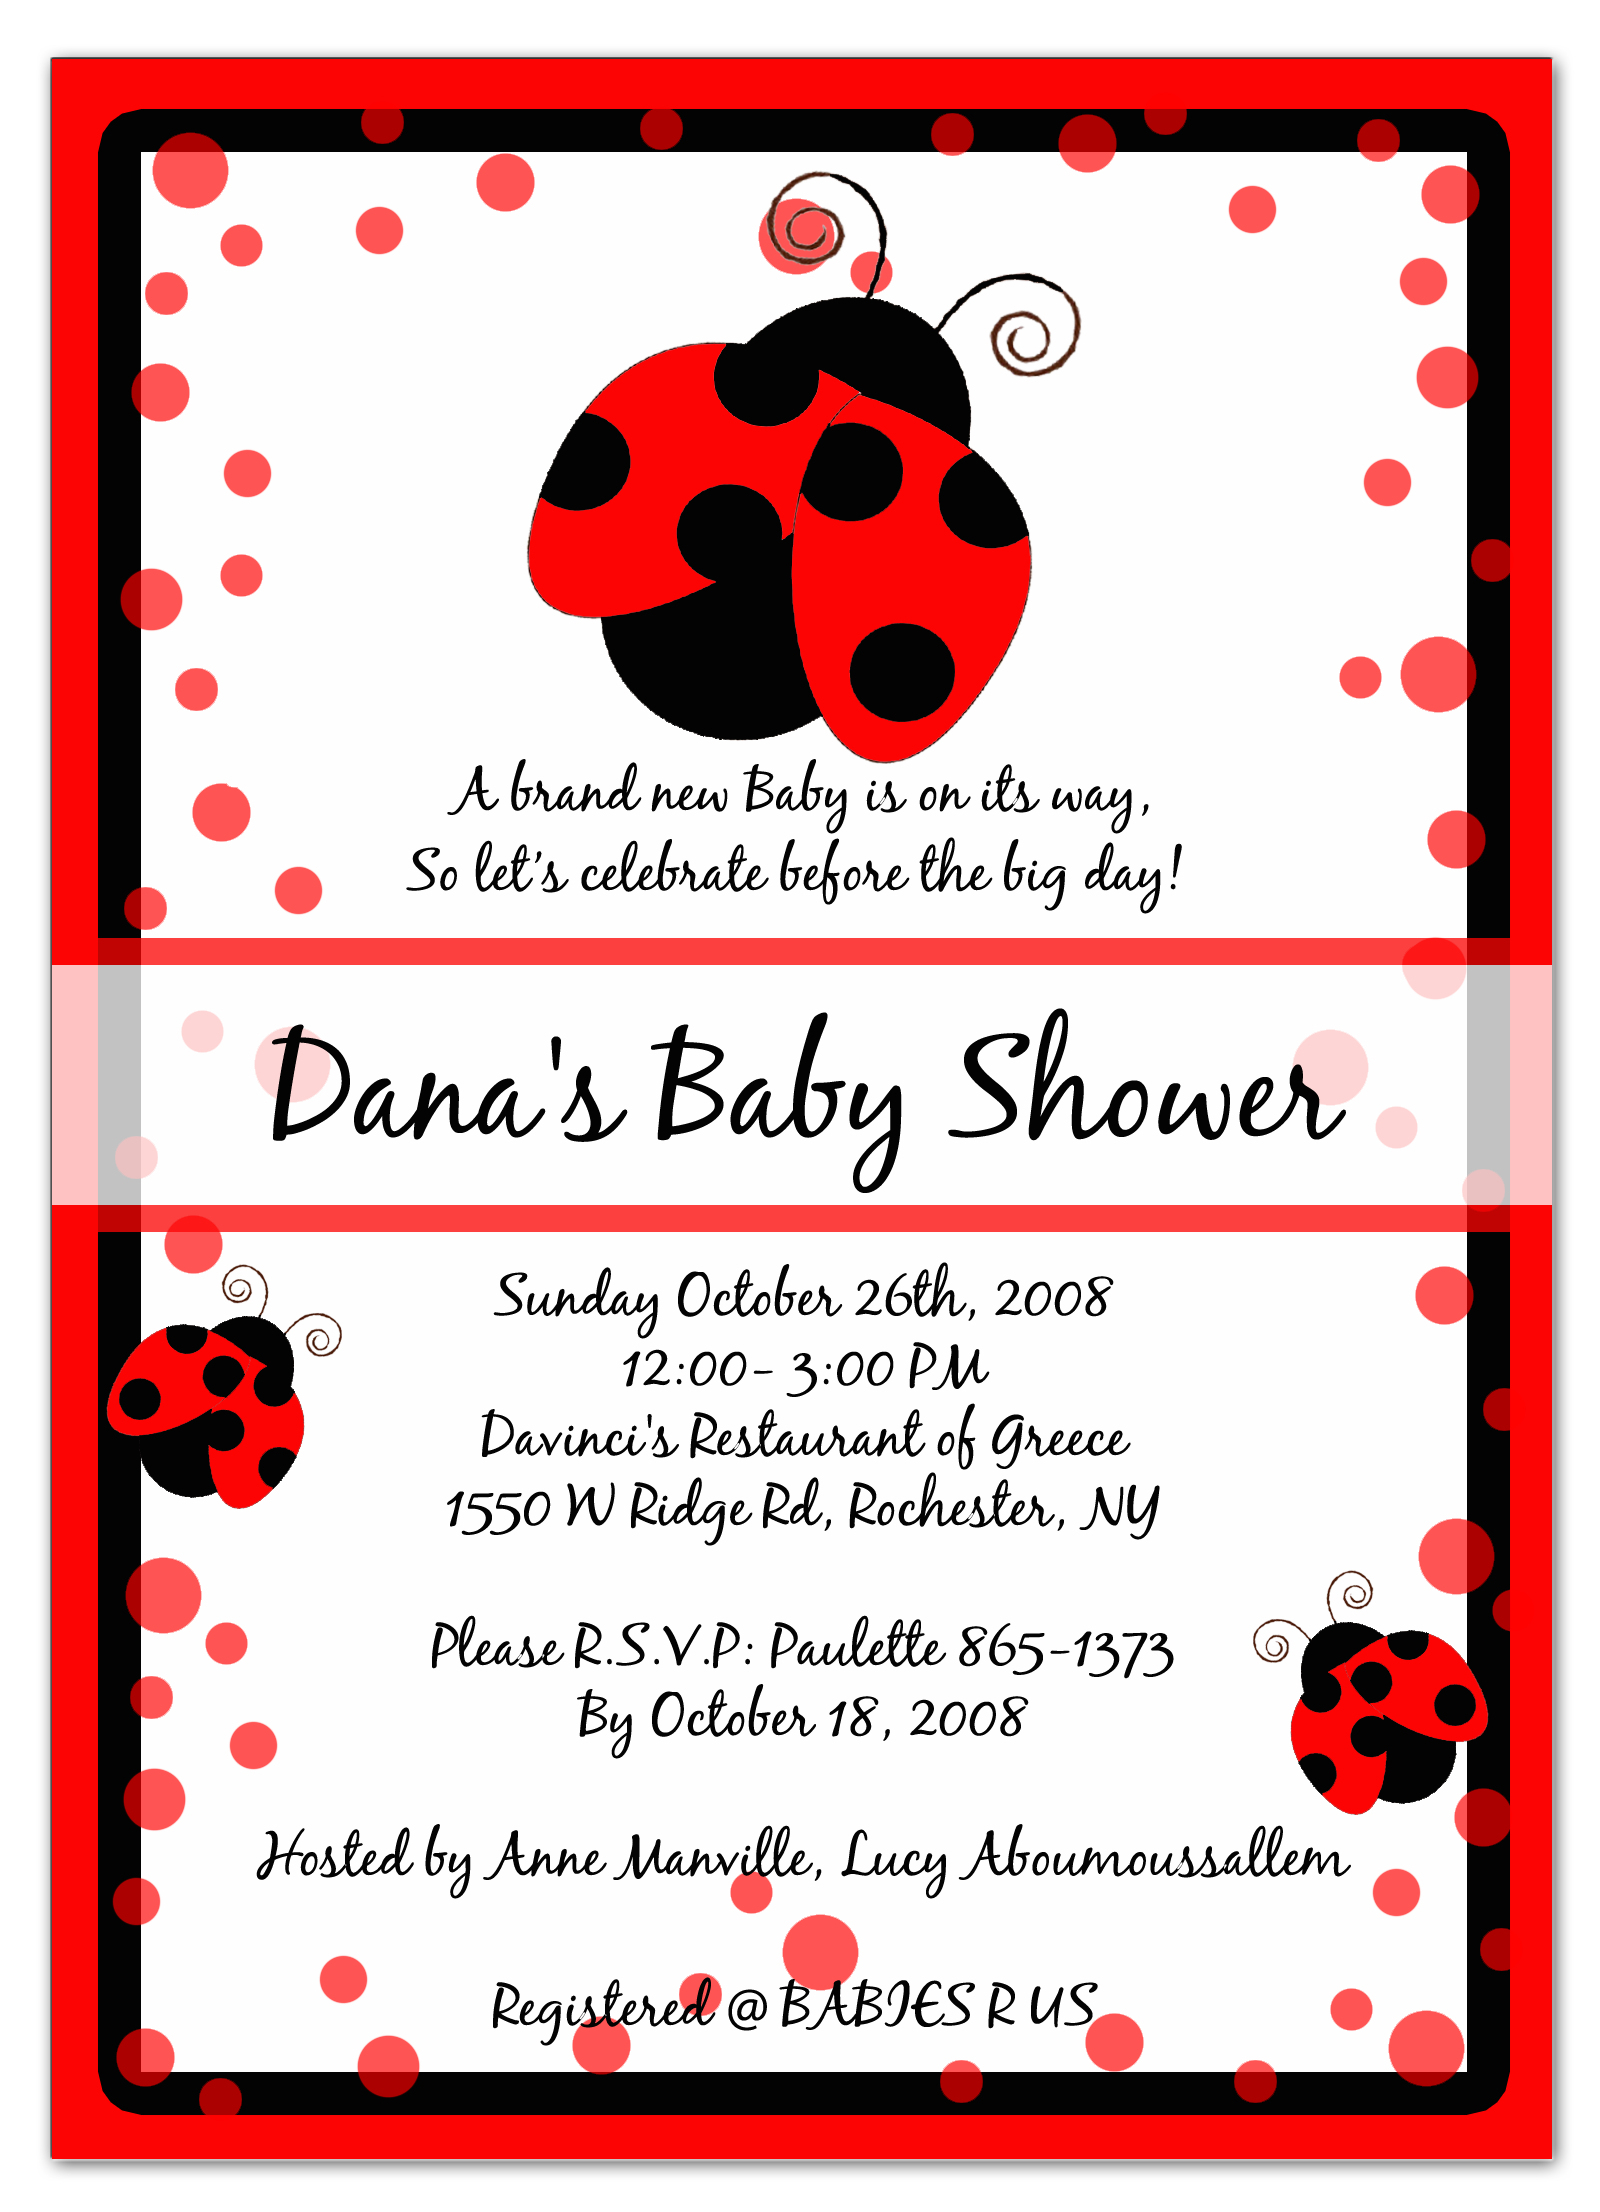 Photo : Cheap Sweet Pea Invitations Image - Free Printable Ladybug Baby Shower Invitations Templates